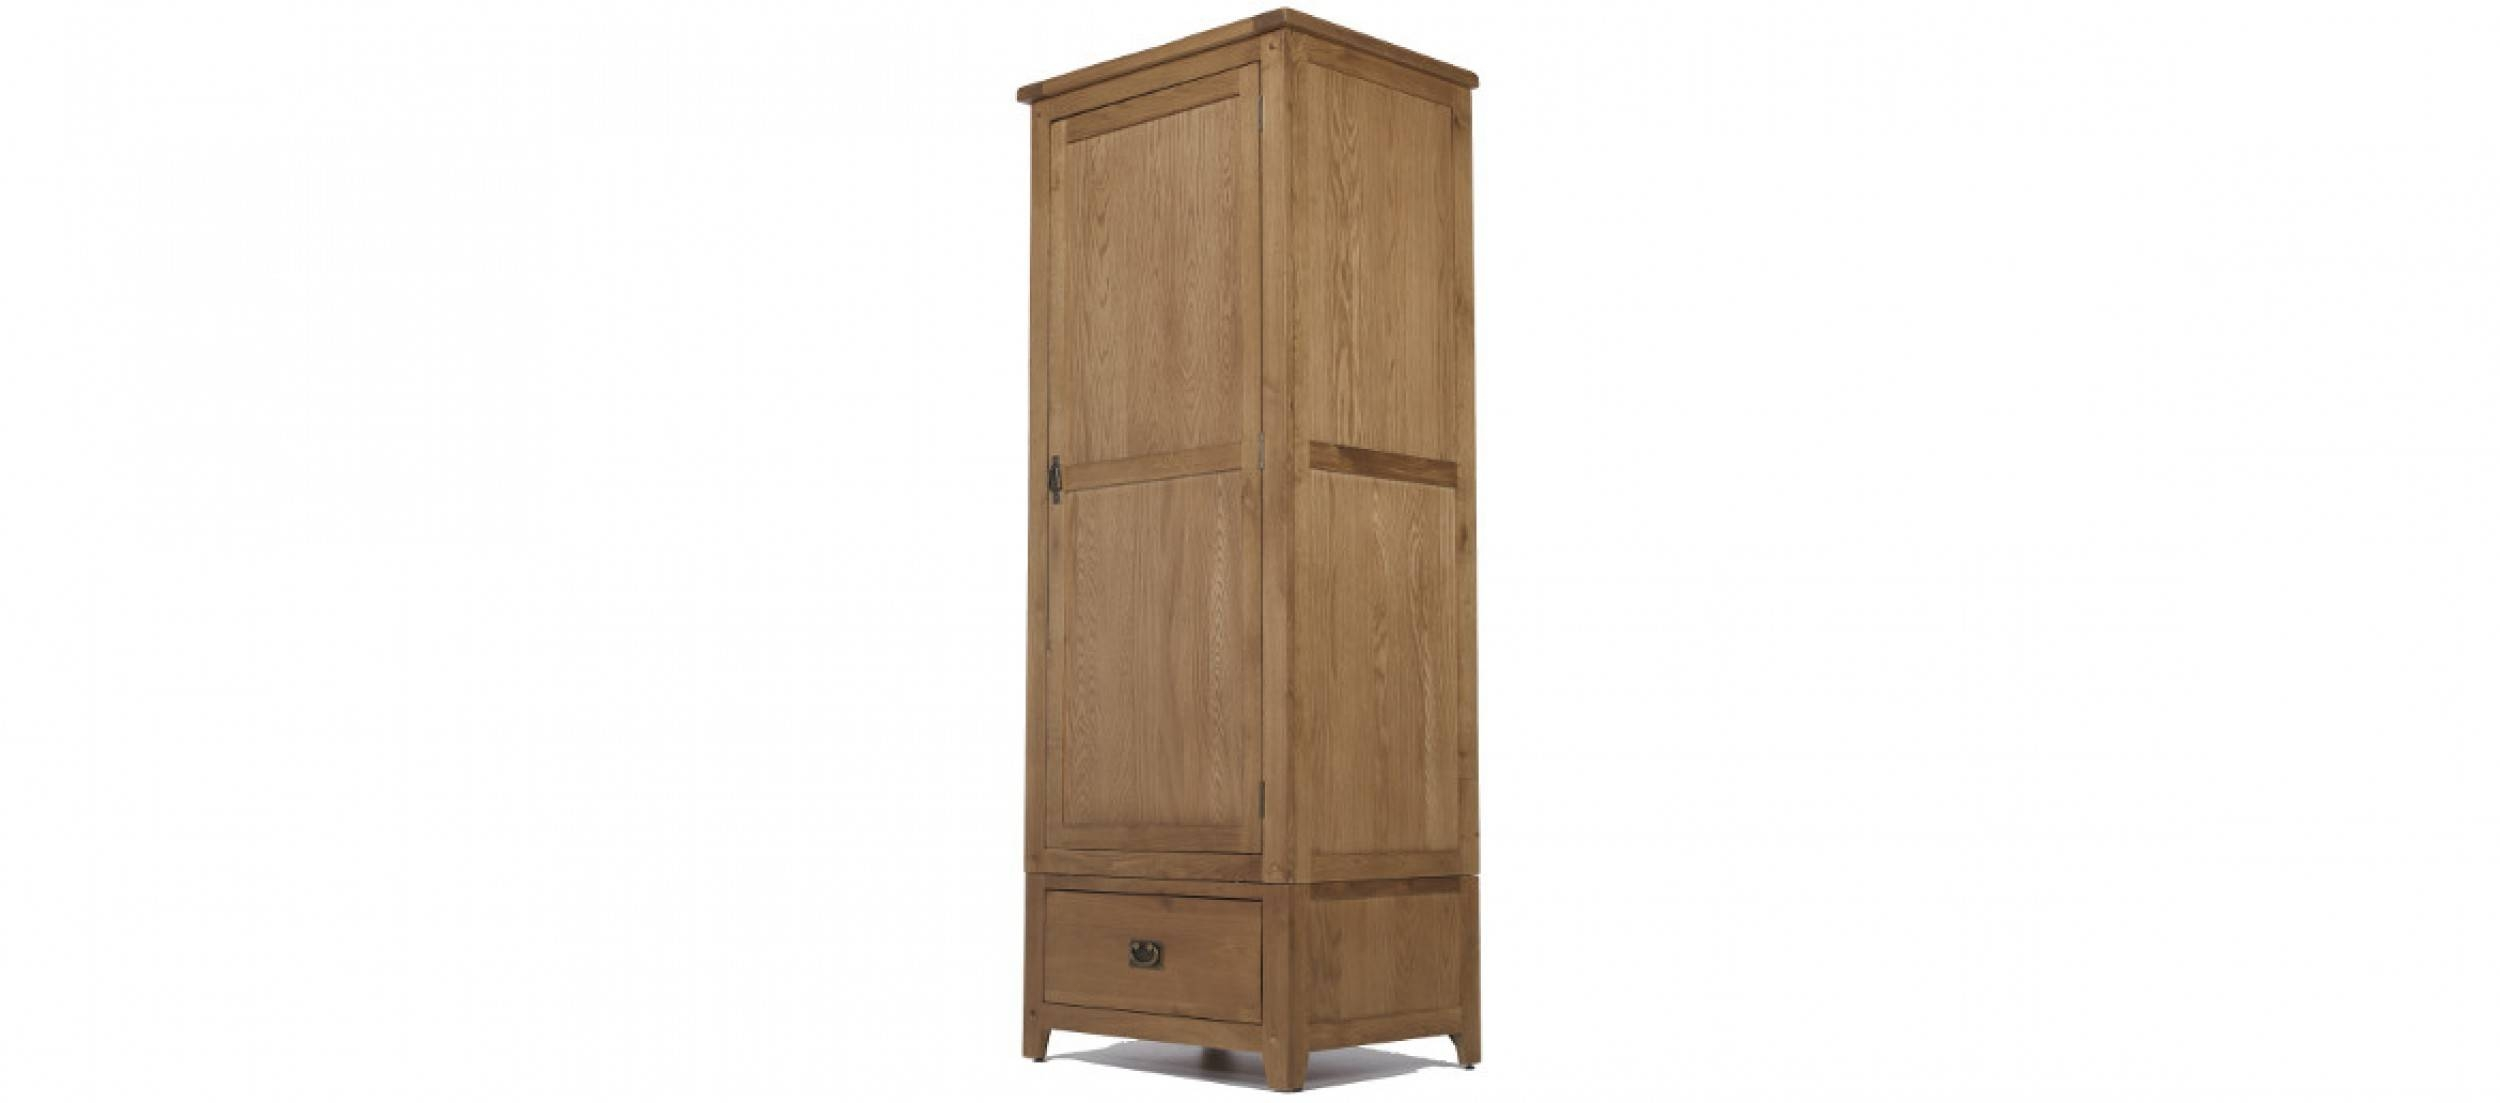 Rustic Oak Single Wardrobe | Quercus Living within Single Pine Wardrobes (Image 10 of 15)